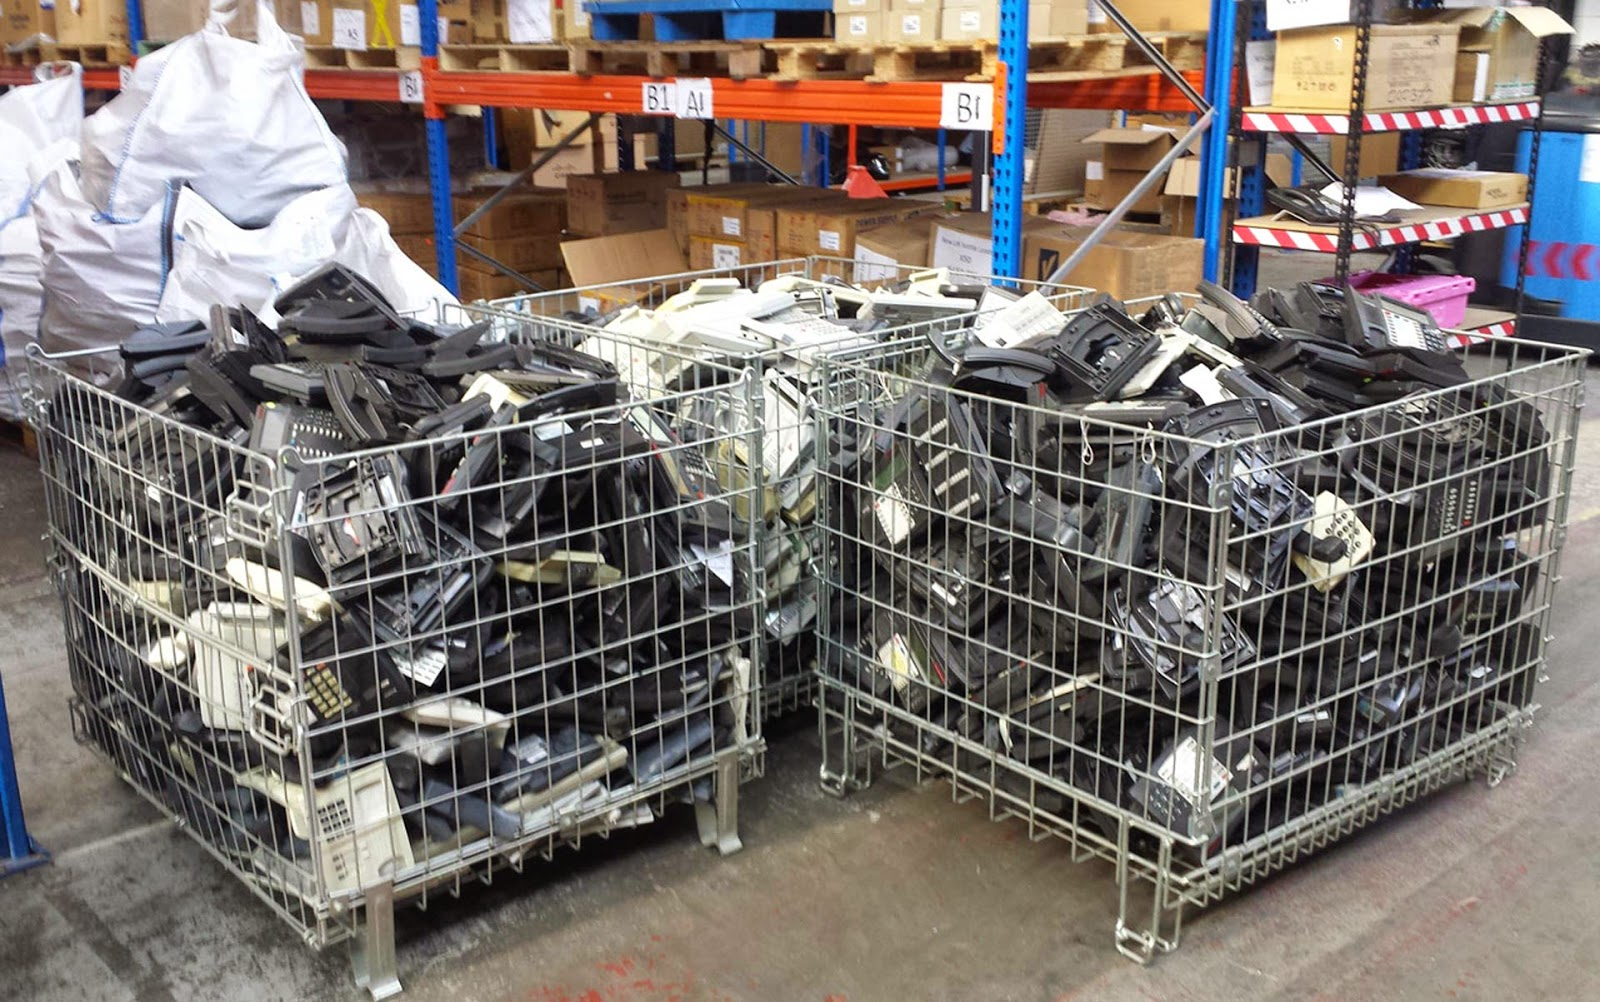 3 lots of used phone systems